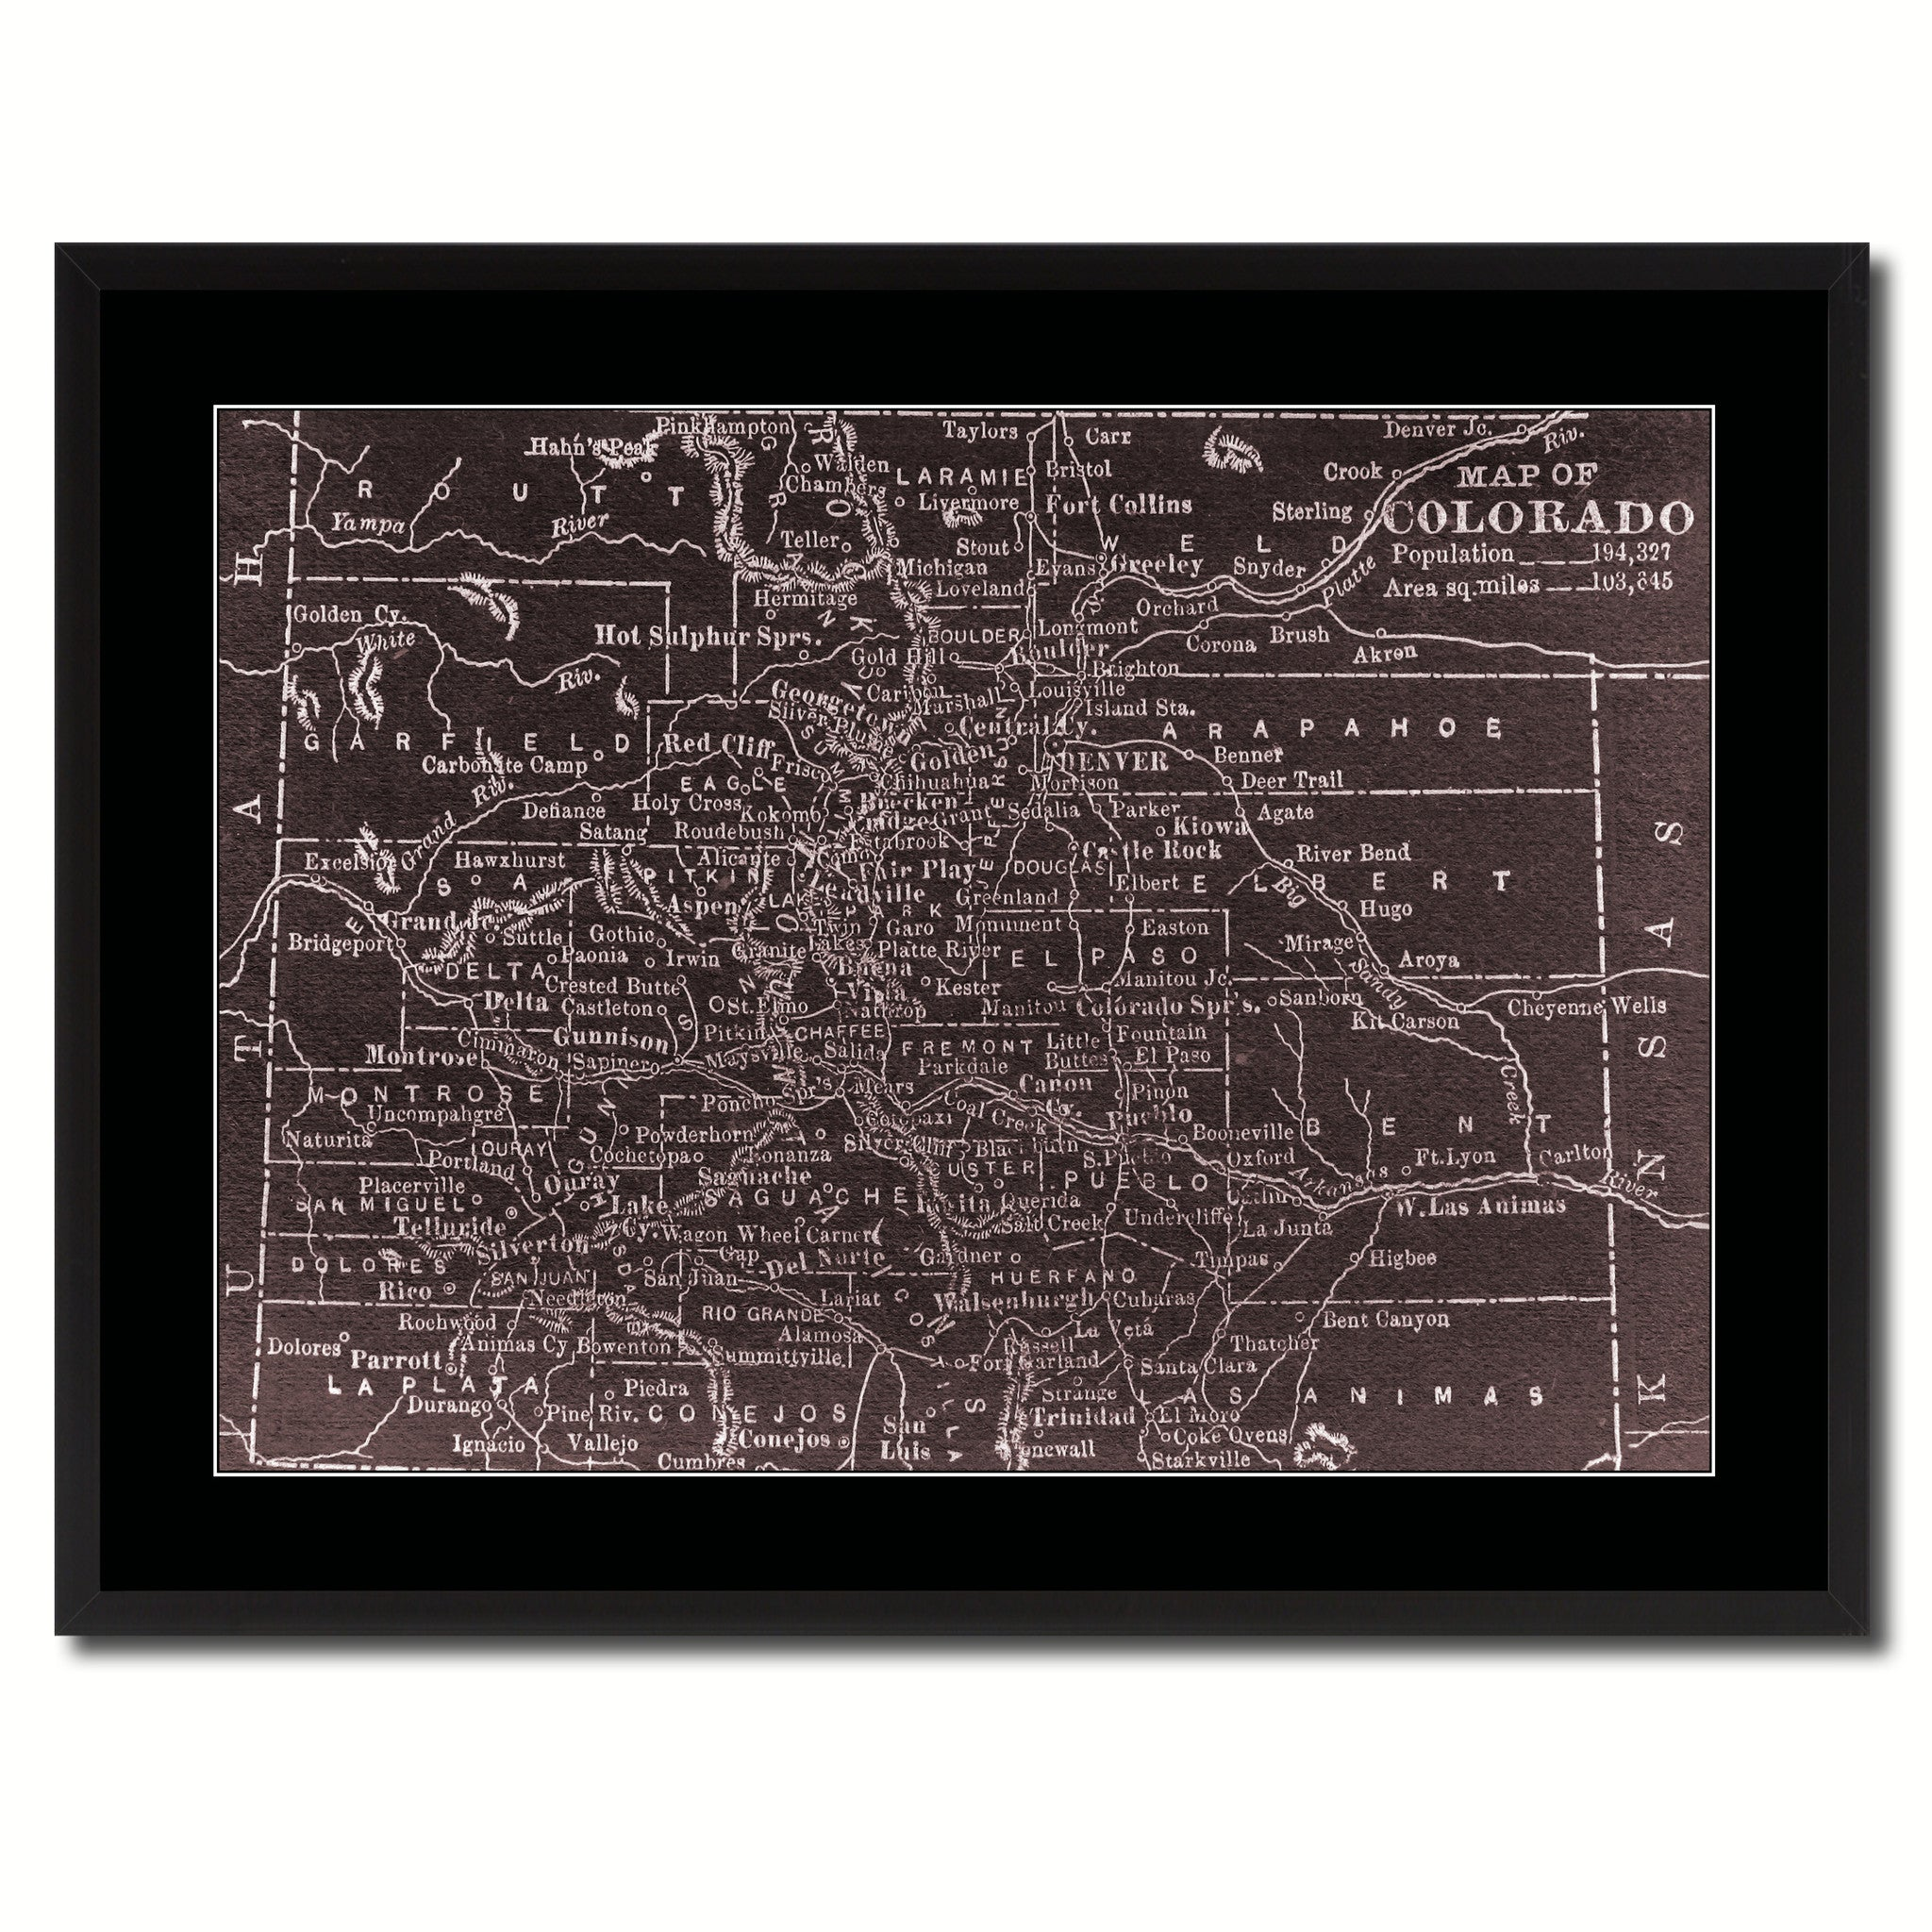 Colorado Vintage Vivid Sepia Map Canvas Print, Picture Frames Home Decor Wall Art Decoration Gifts